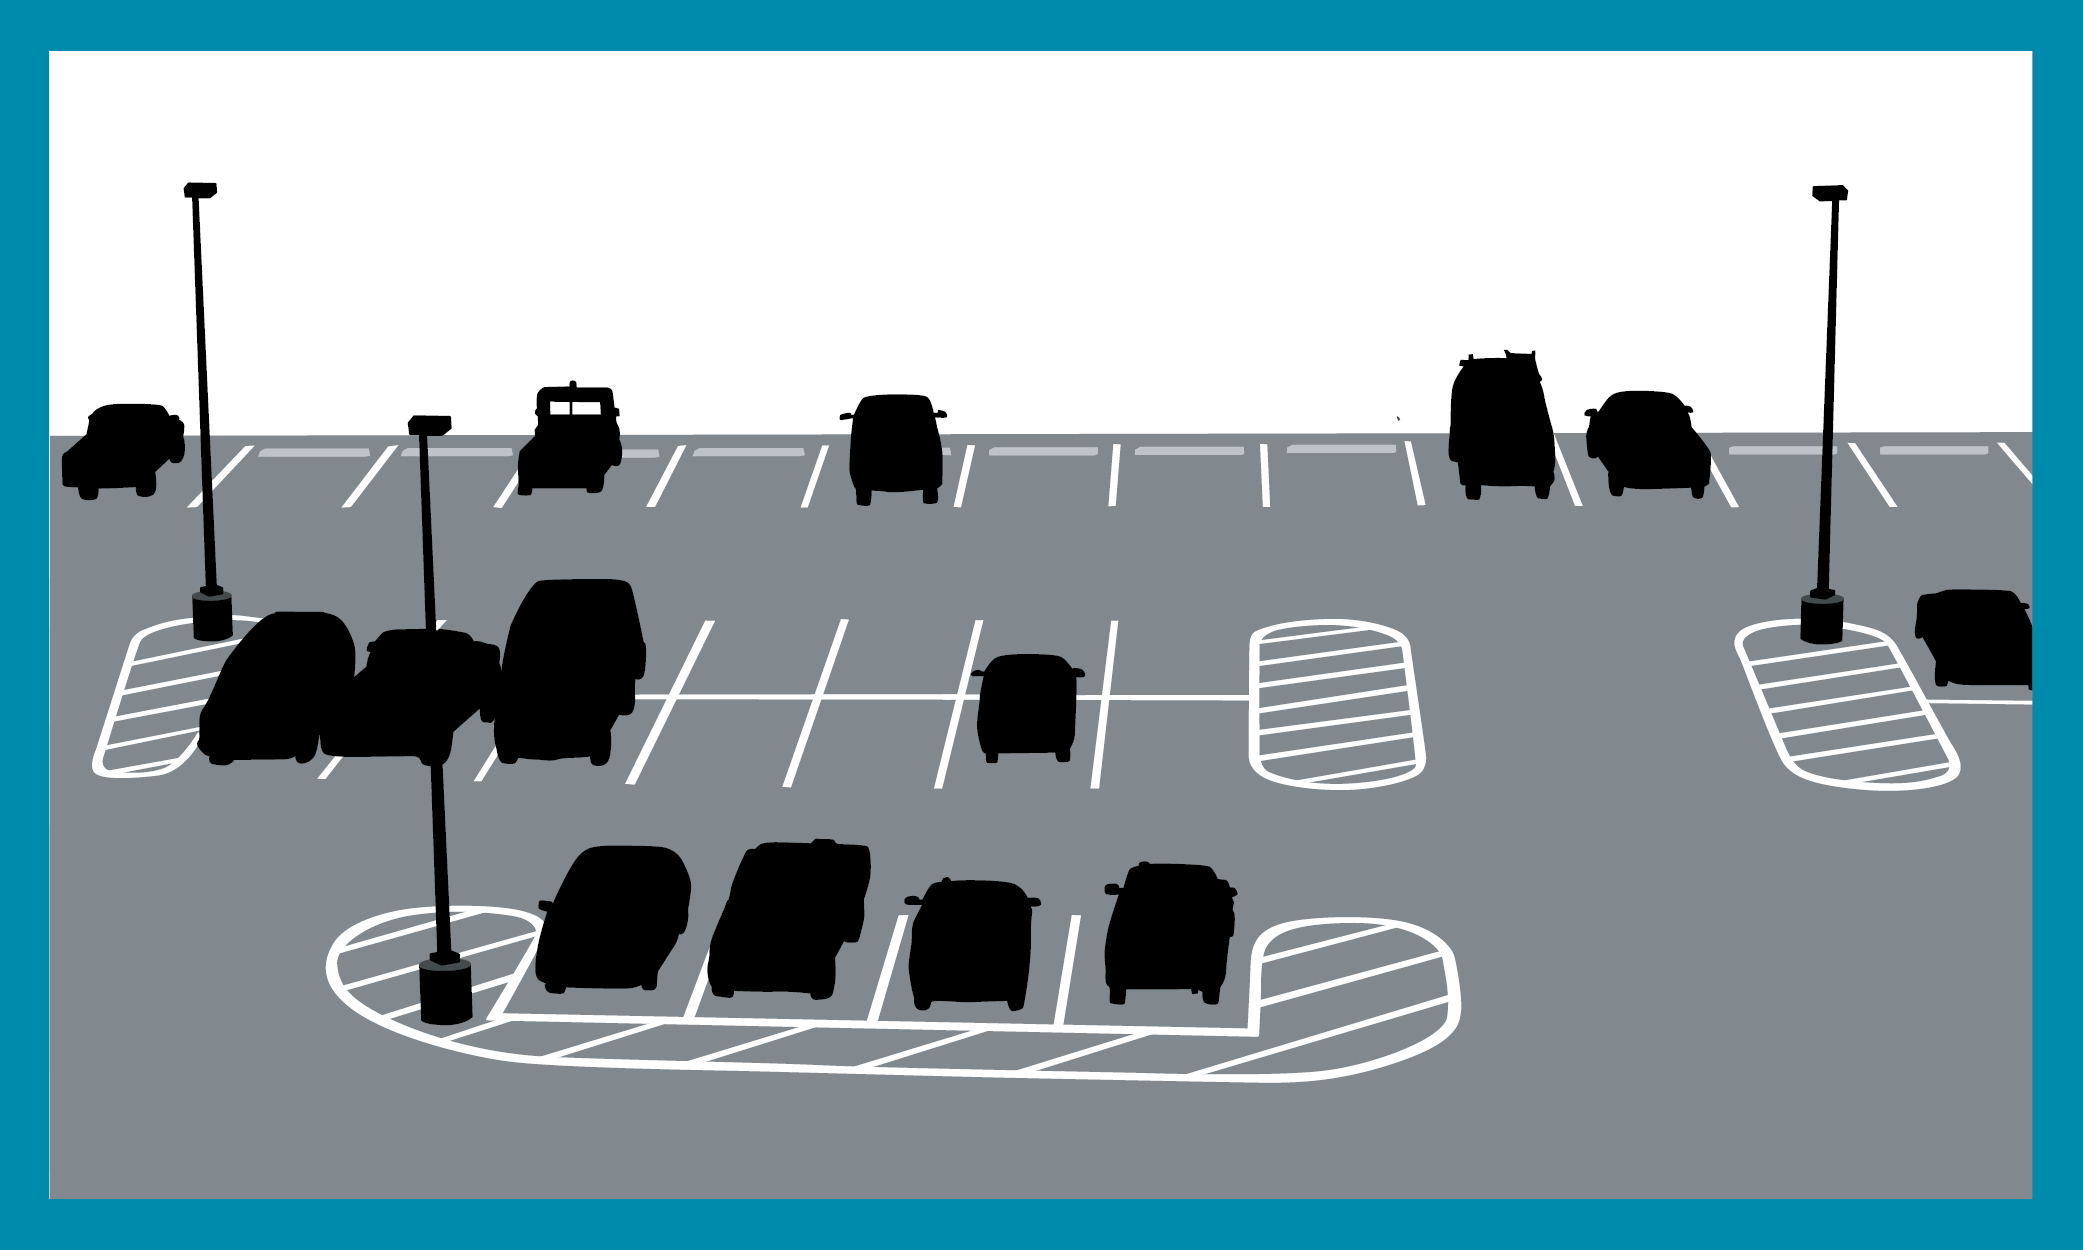 Graphic of a parking lot